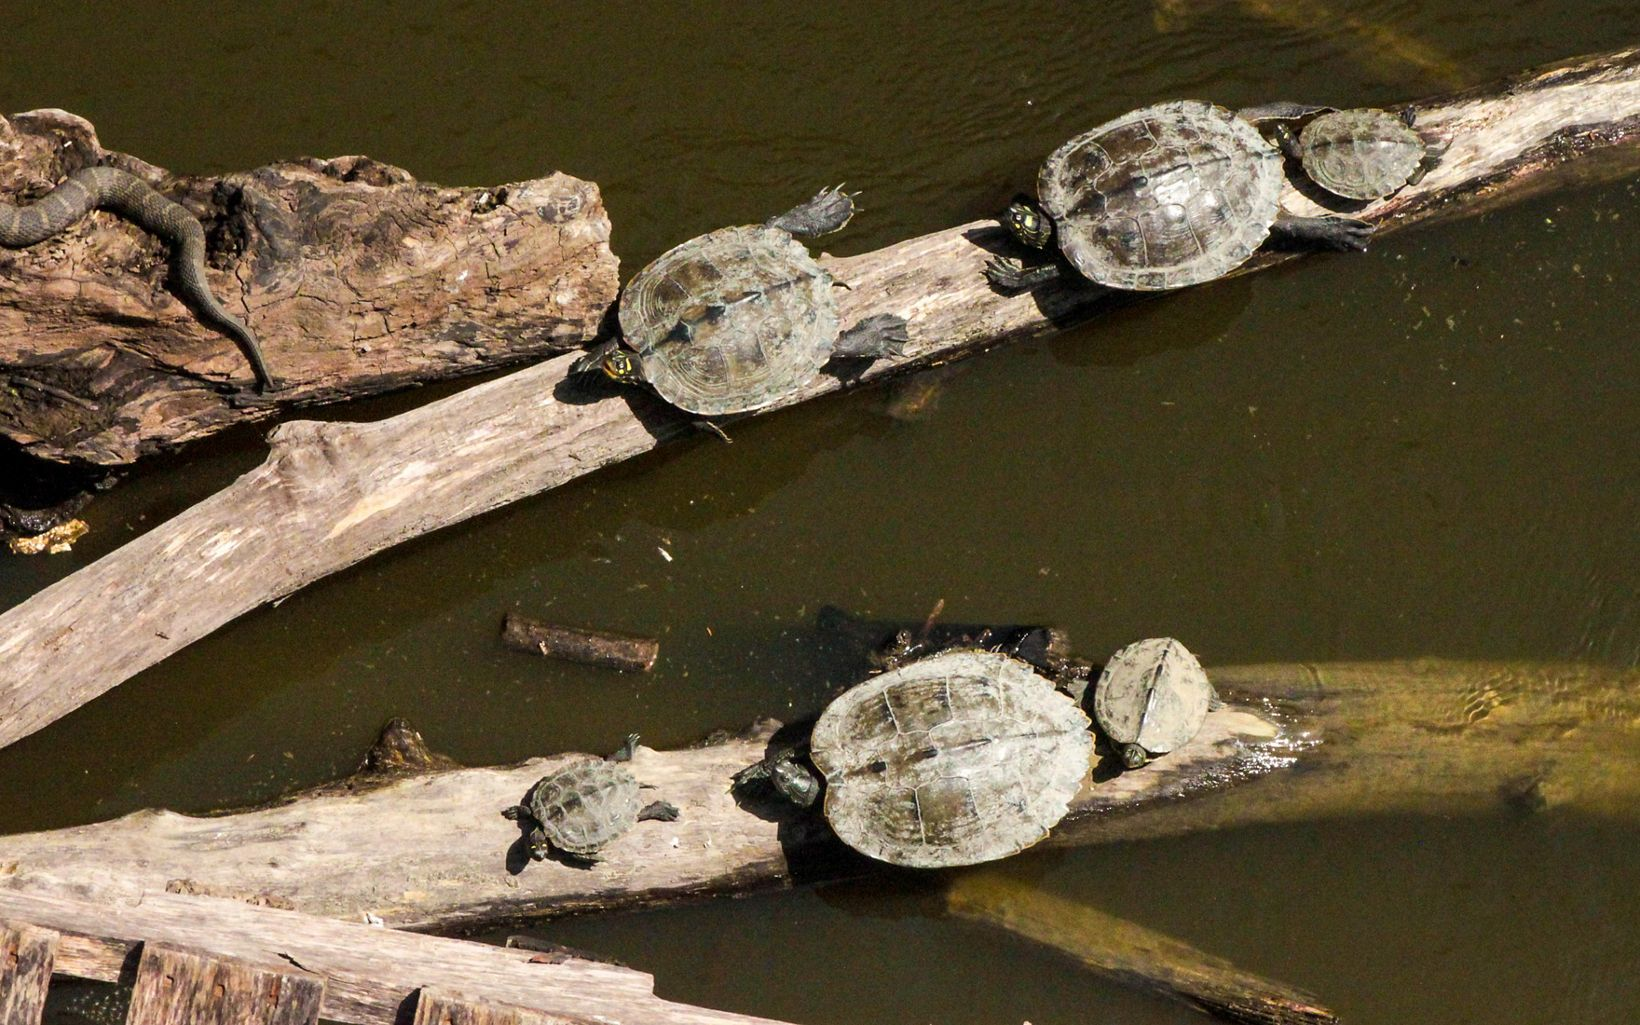 Turtles in The Land of the Swamp White Oak basking in the sun on a log